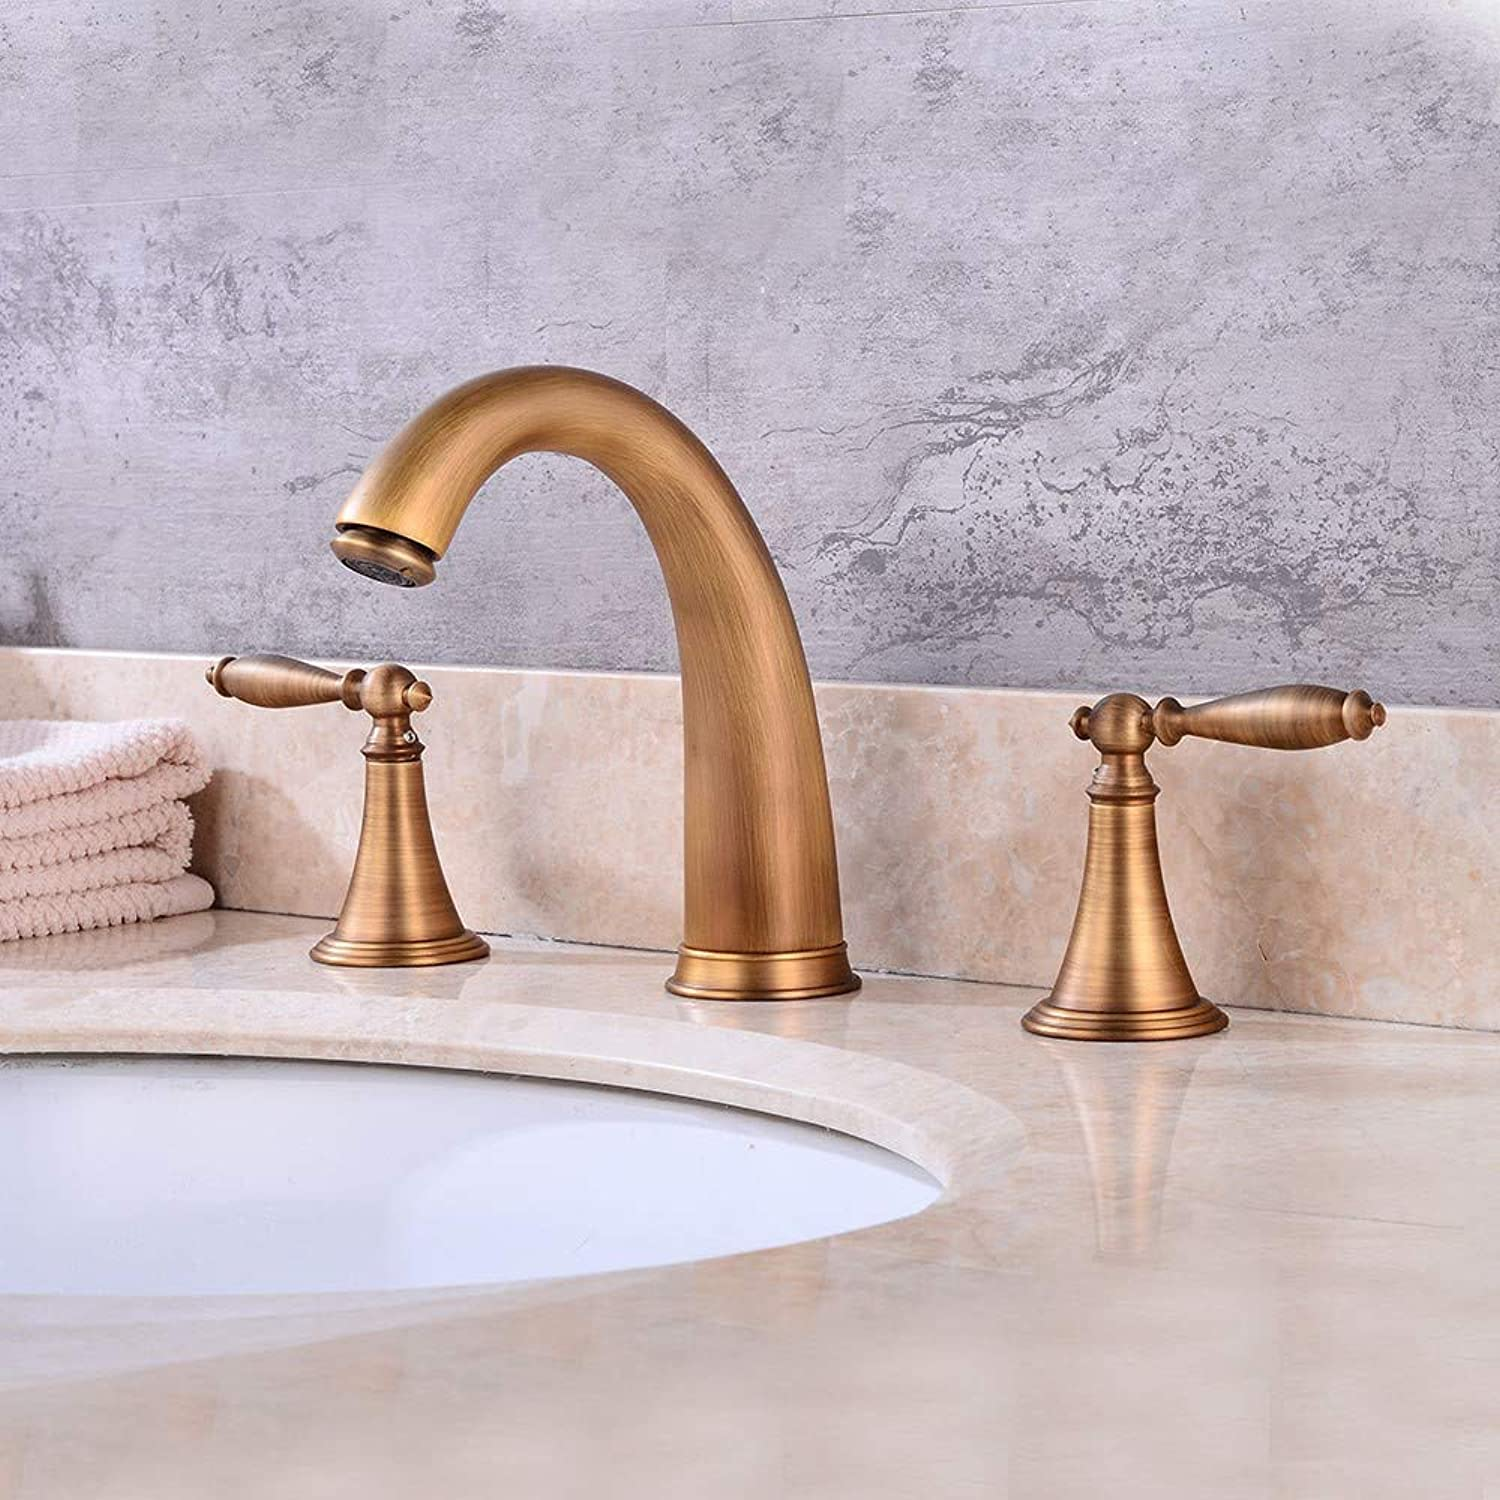 Bathroom Sink Taps Creative Brushed Mixer Mixing Faucet Retro Basin Faucet Brass Bathroom Double Handle Faucet